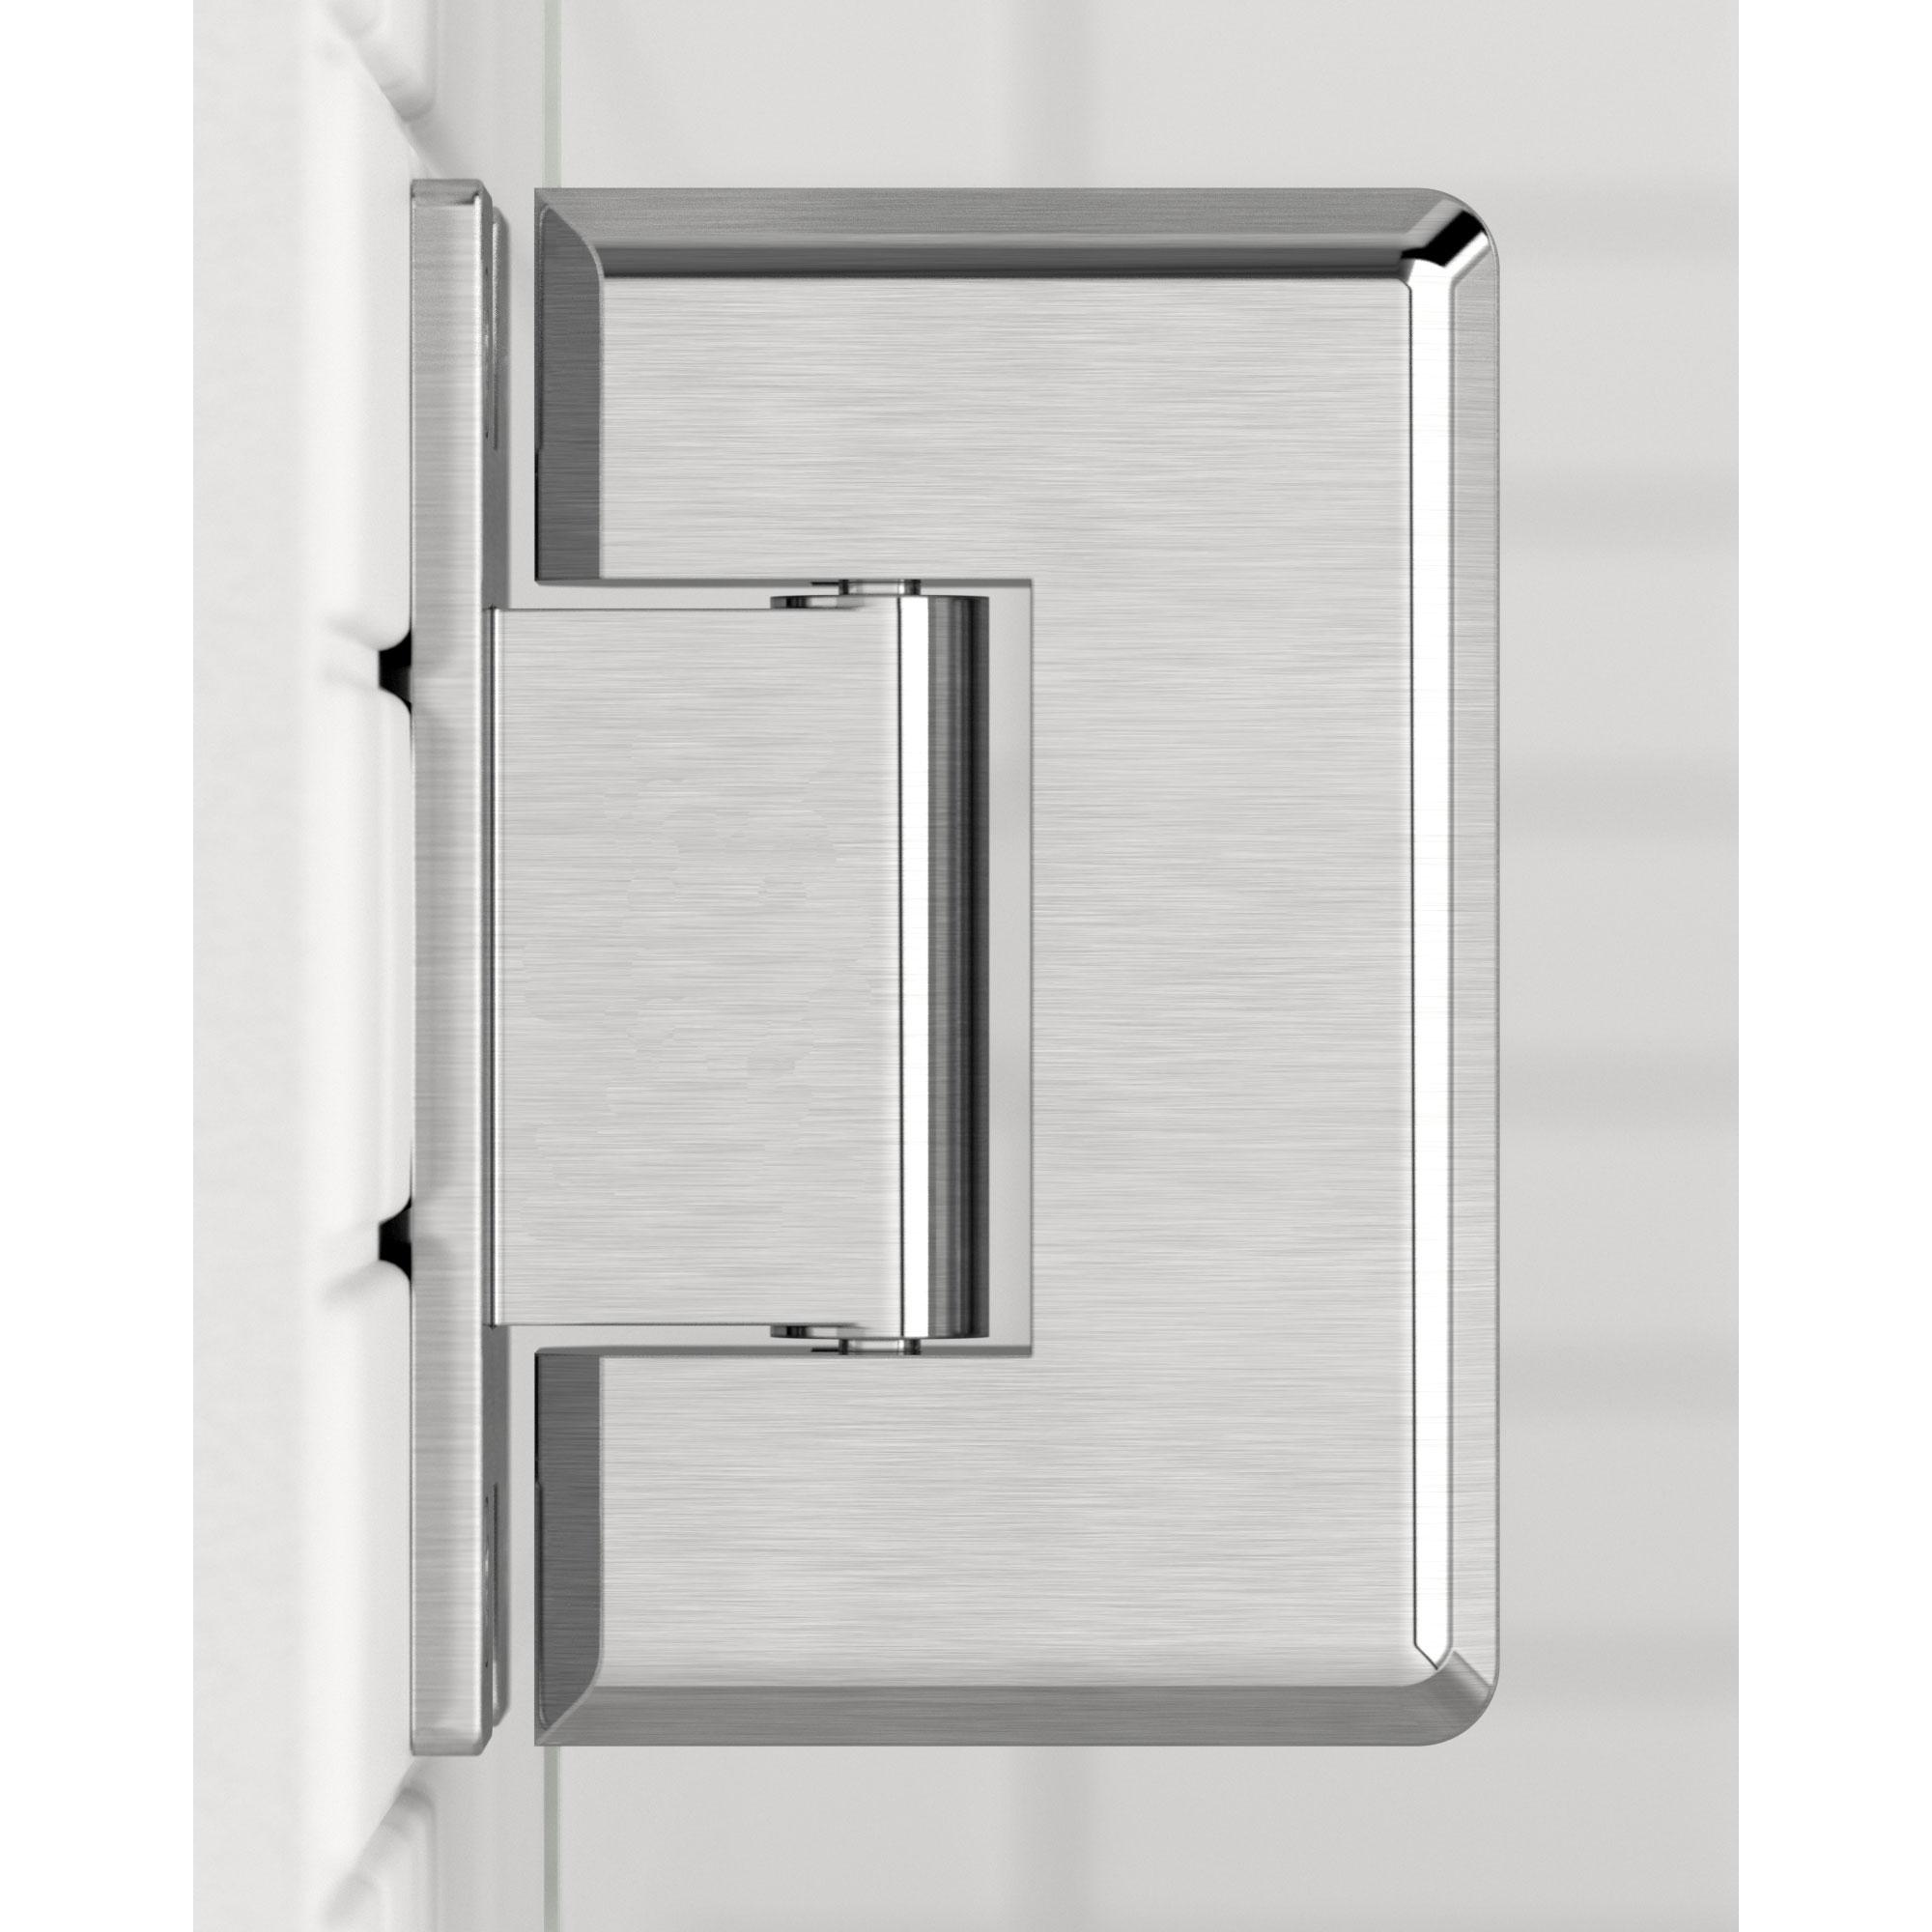 Basco Classic Sliding Shower Door Fits 56 60 Inch Opening